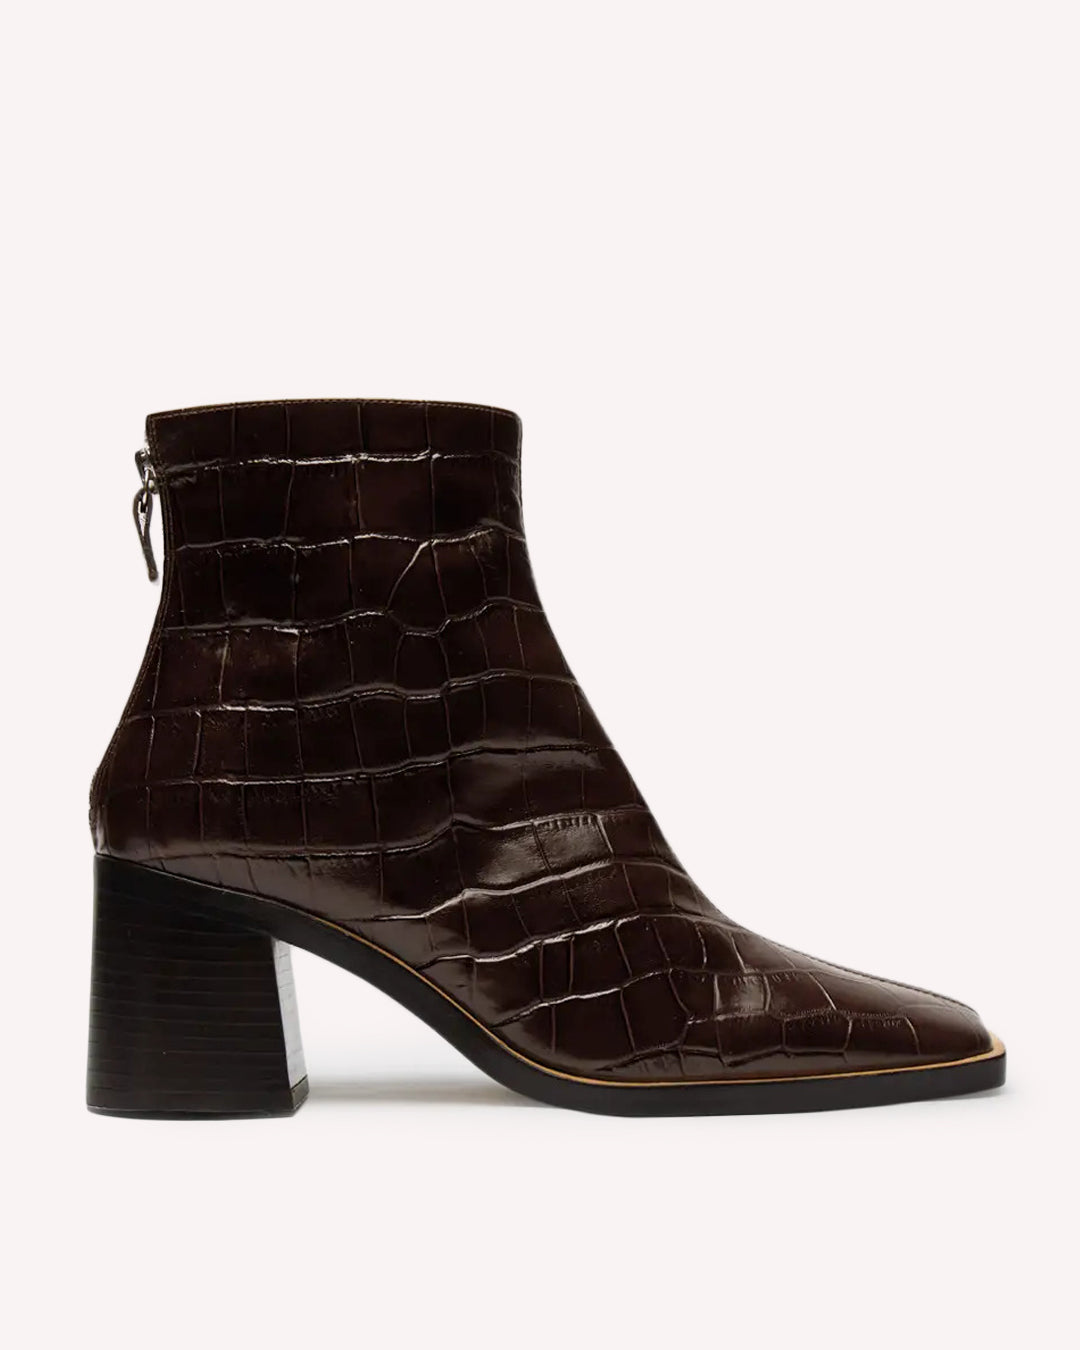 MIISTA Ivy Square Toe Ankle Boot / Brown Croc